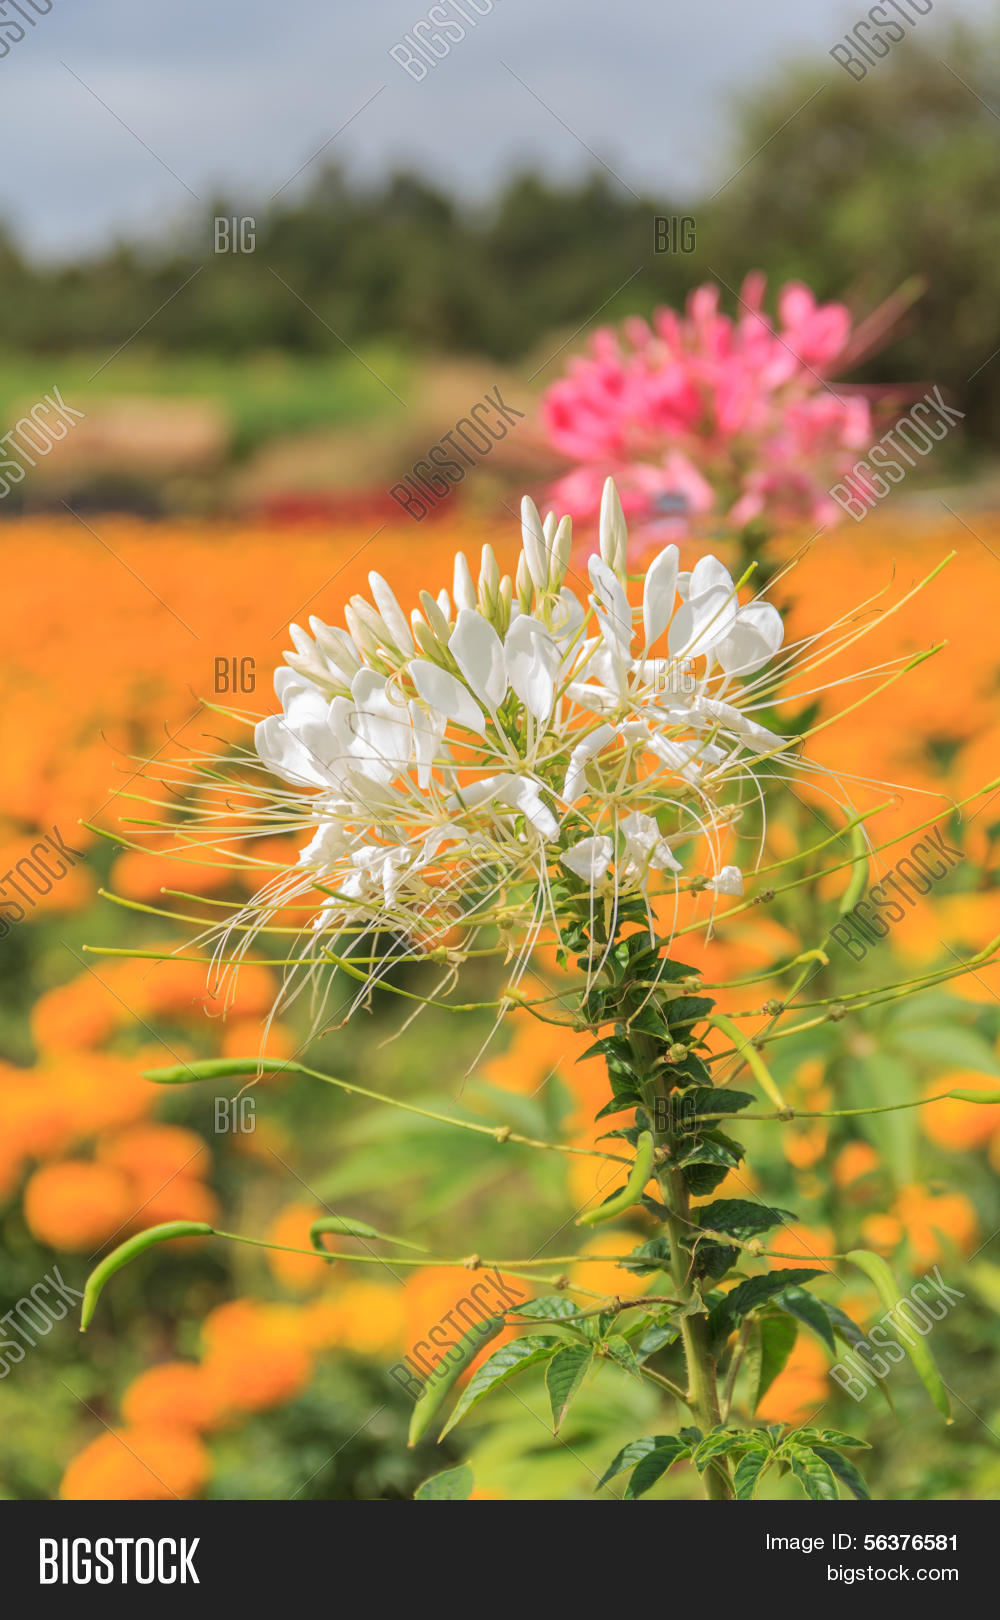 Cleome Spider Flower Image Photo Free Trial Bigstock